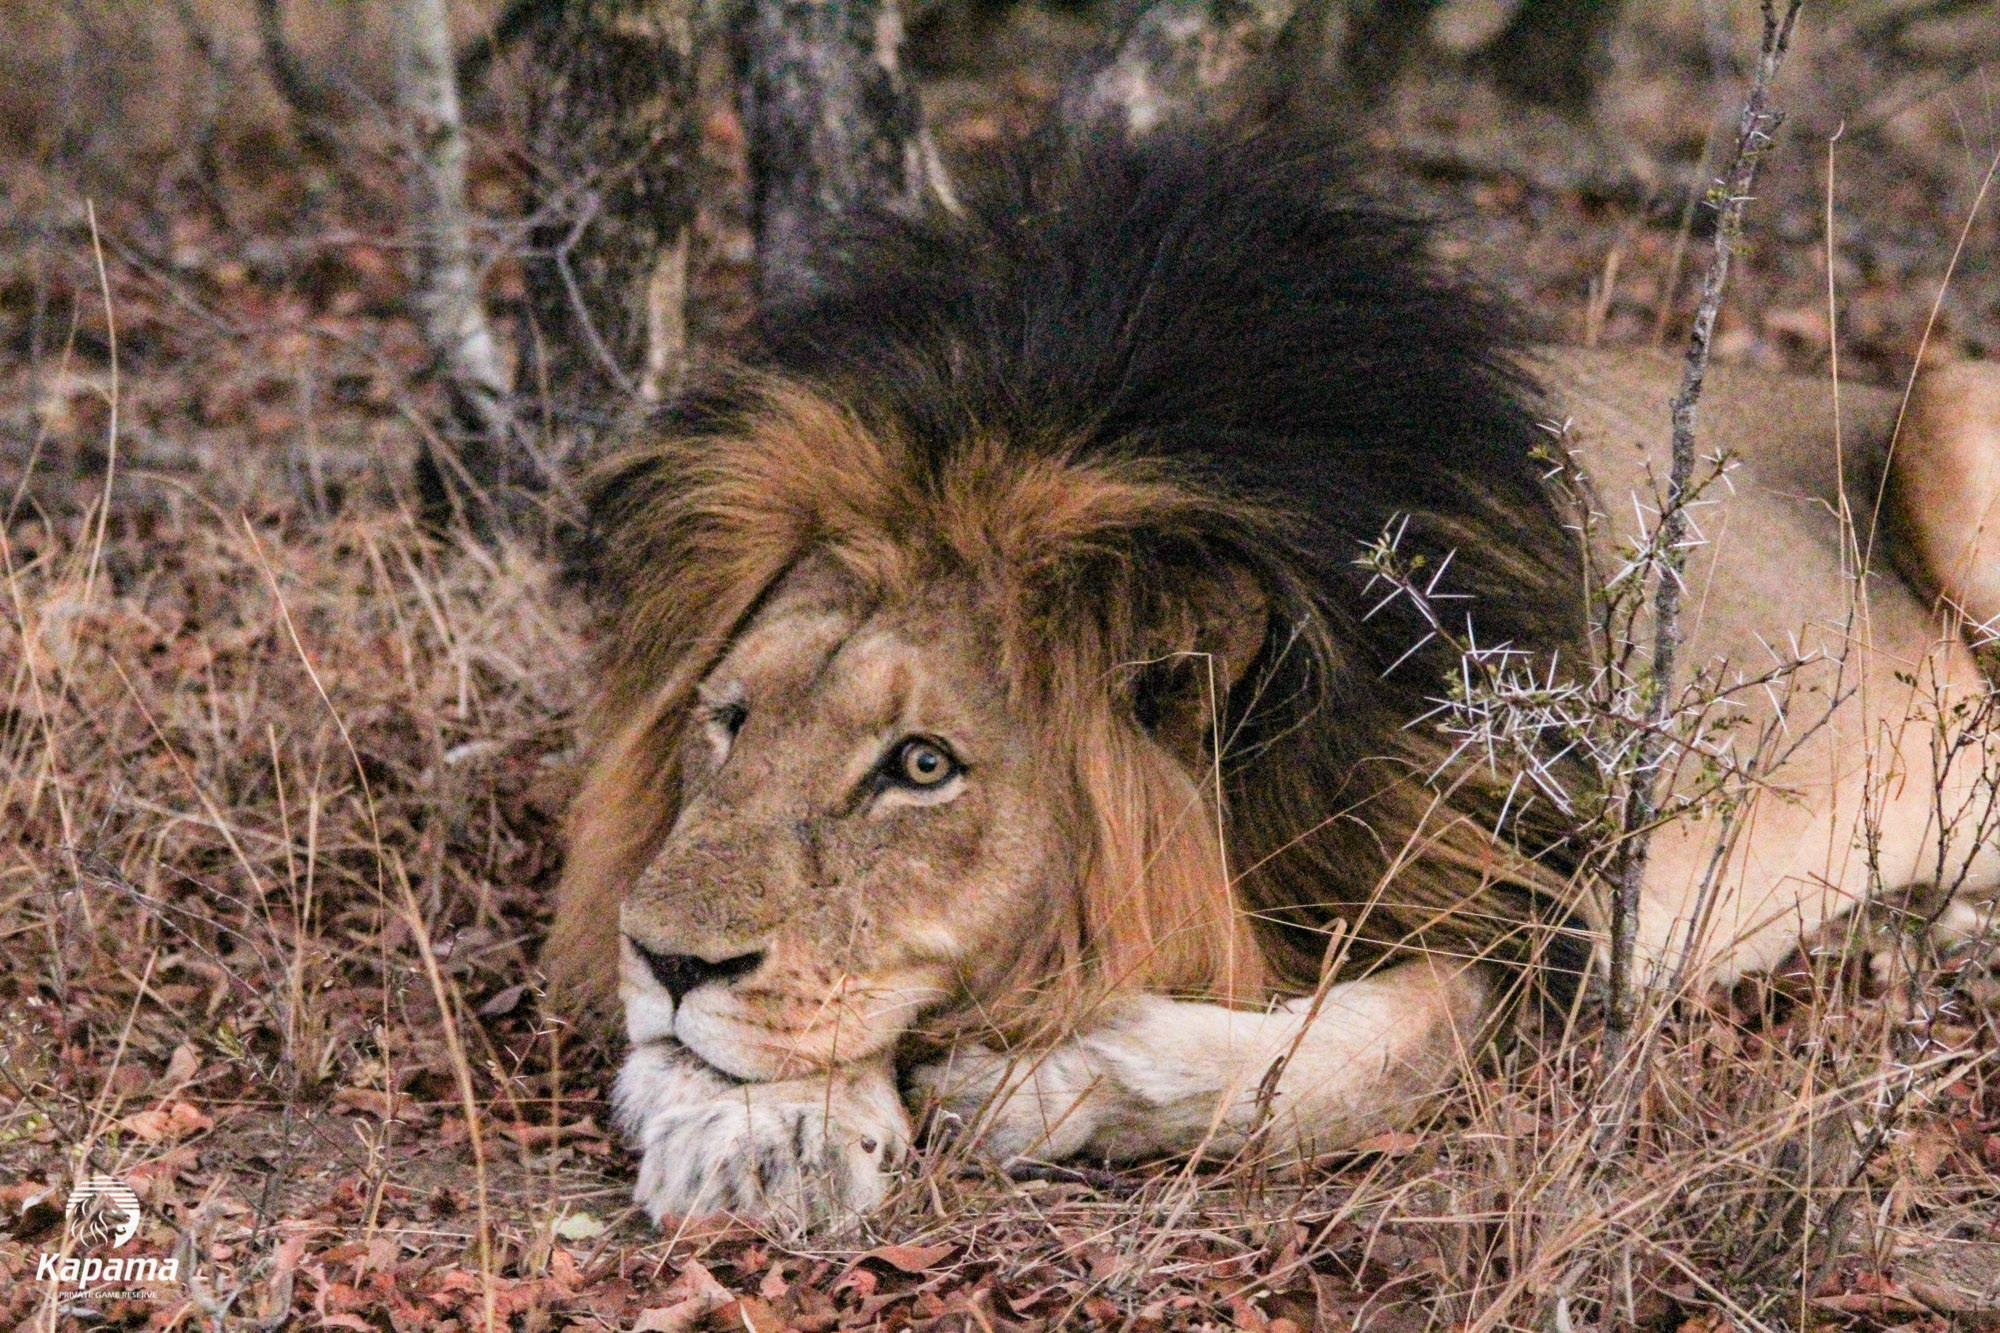 Kapama's One-Eyed King | Taga Safaris